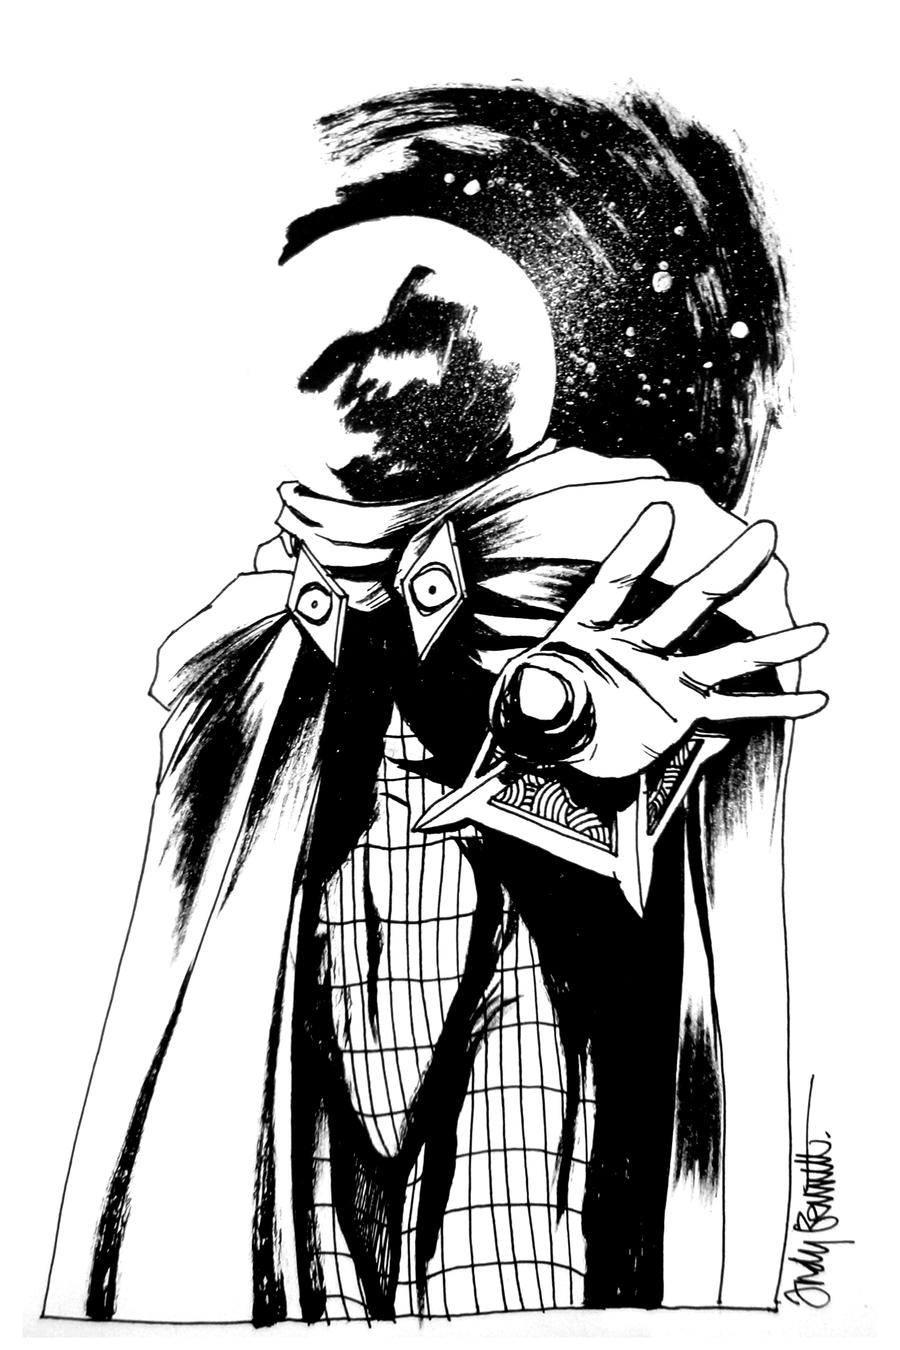 Sketch - Mysterio by B3NN3TT